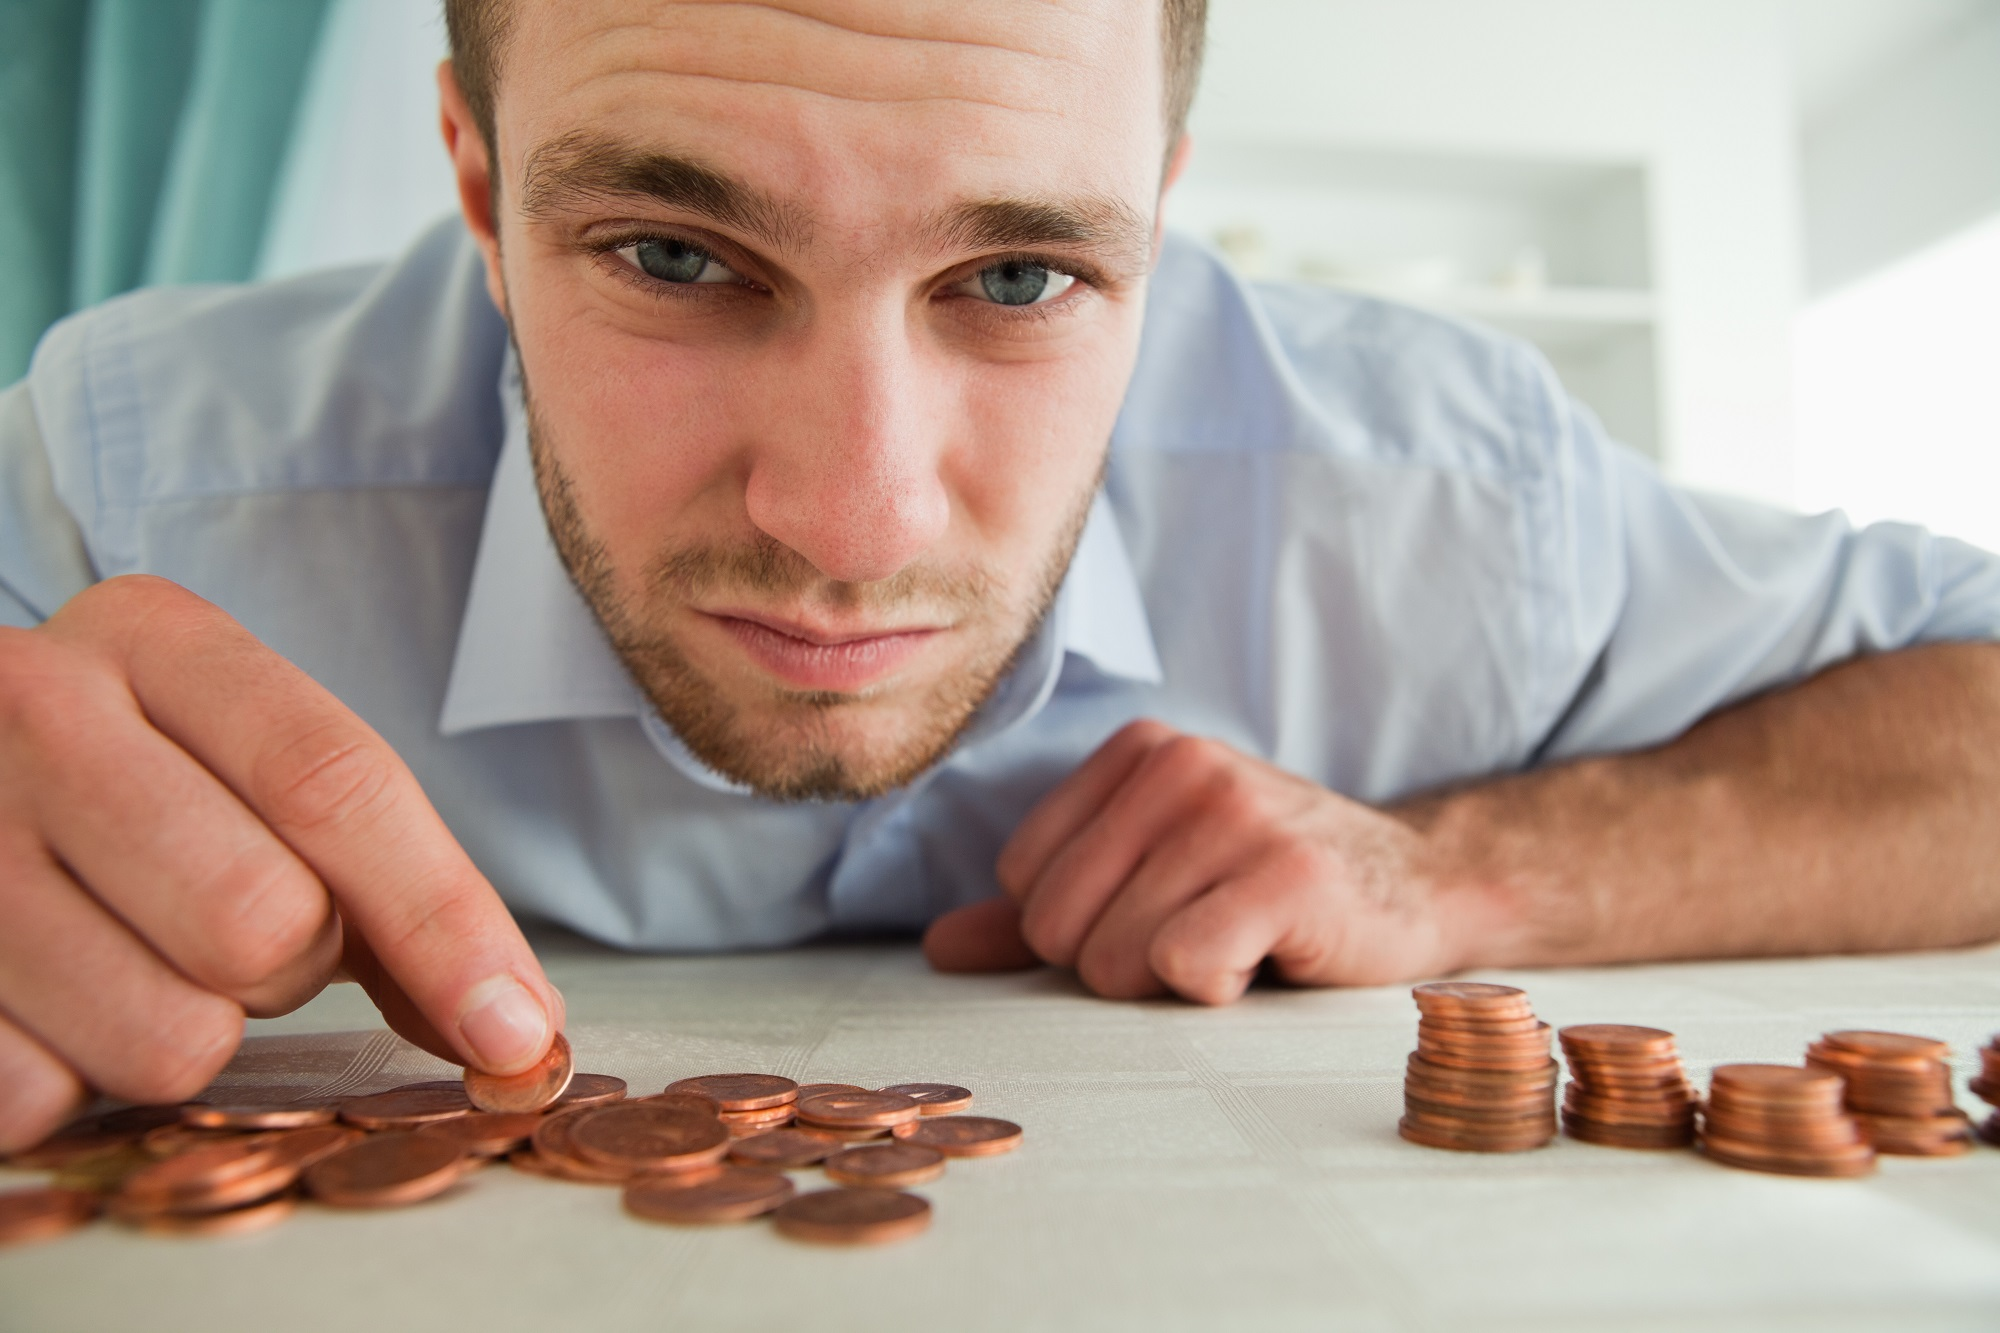 Desperate young businessman counting his change